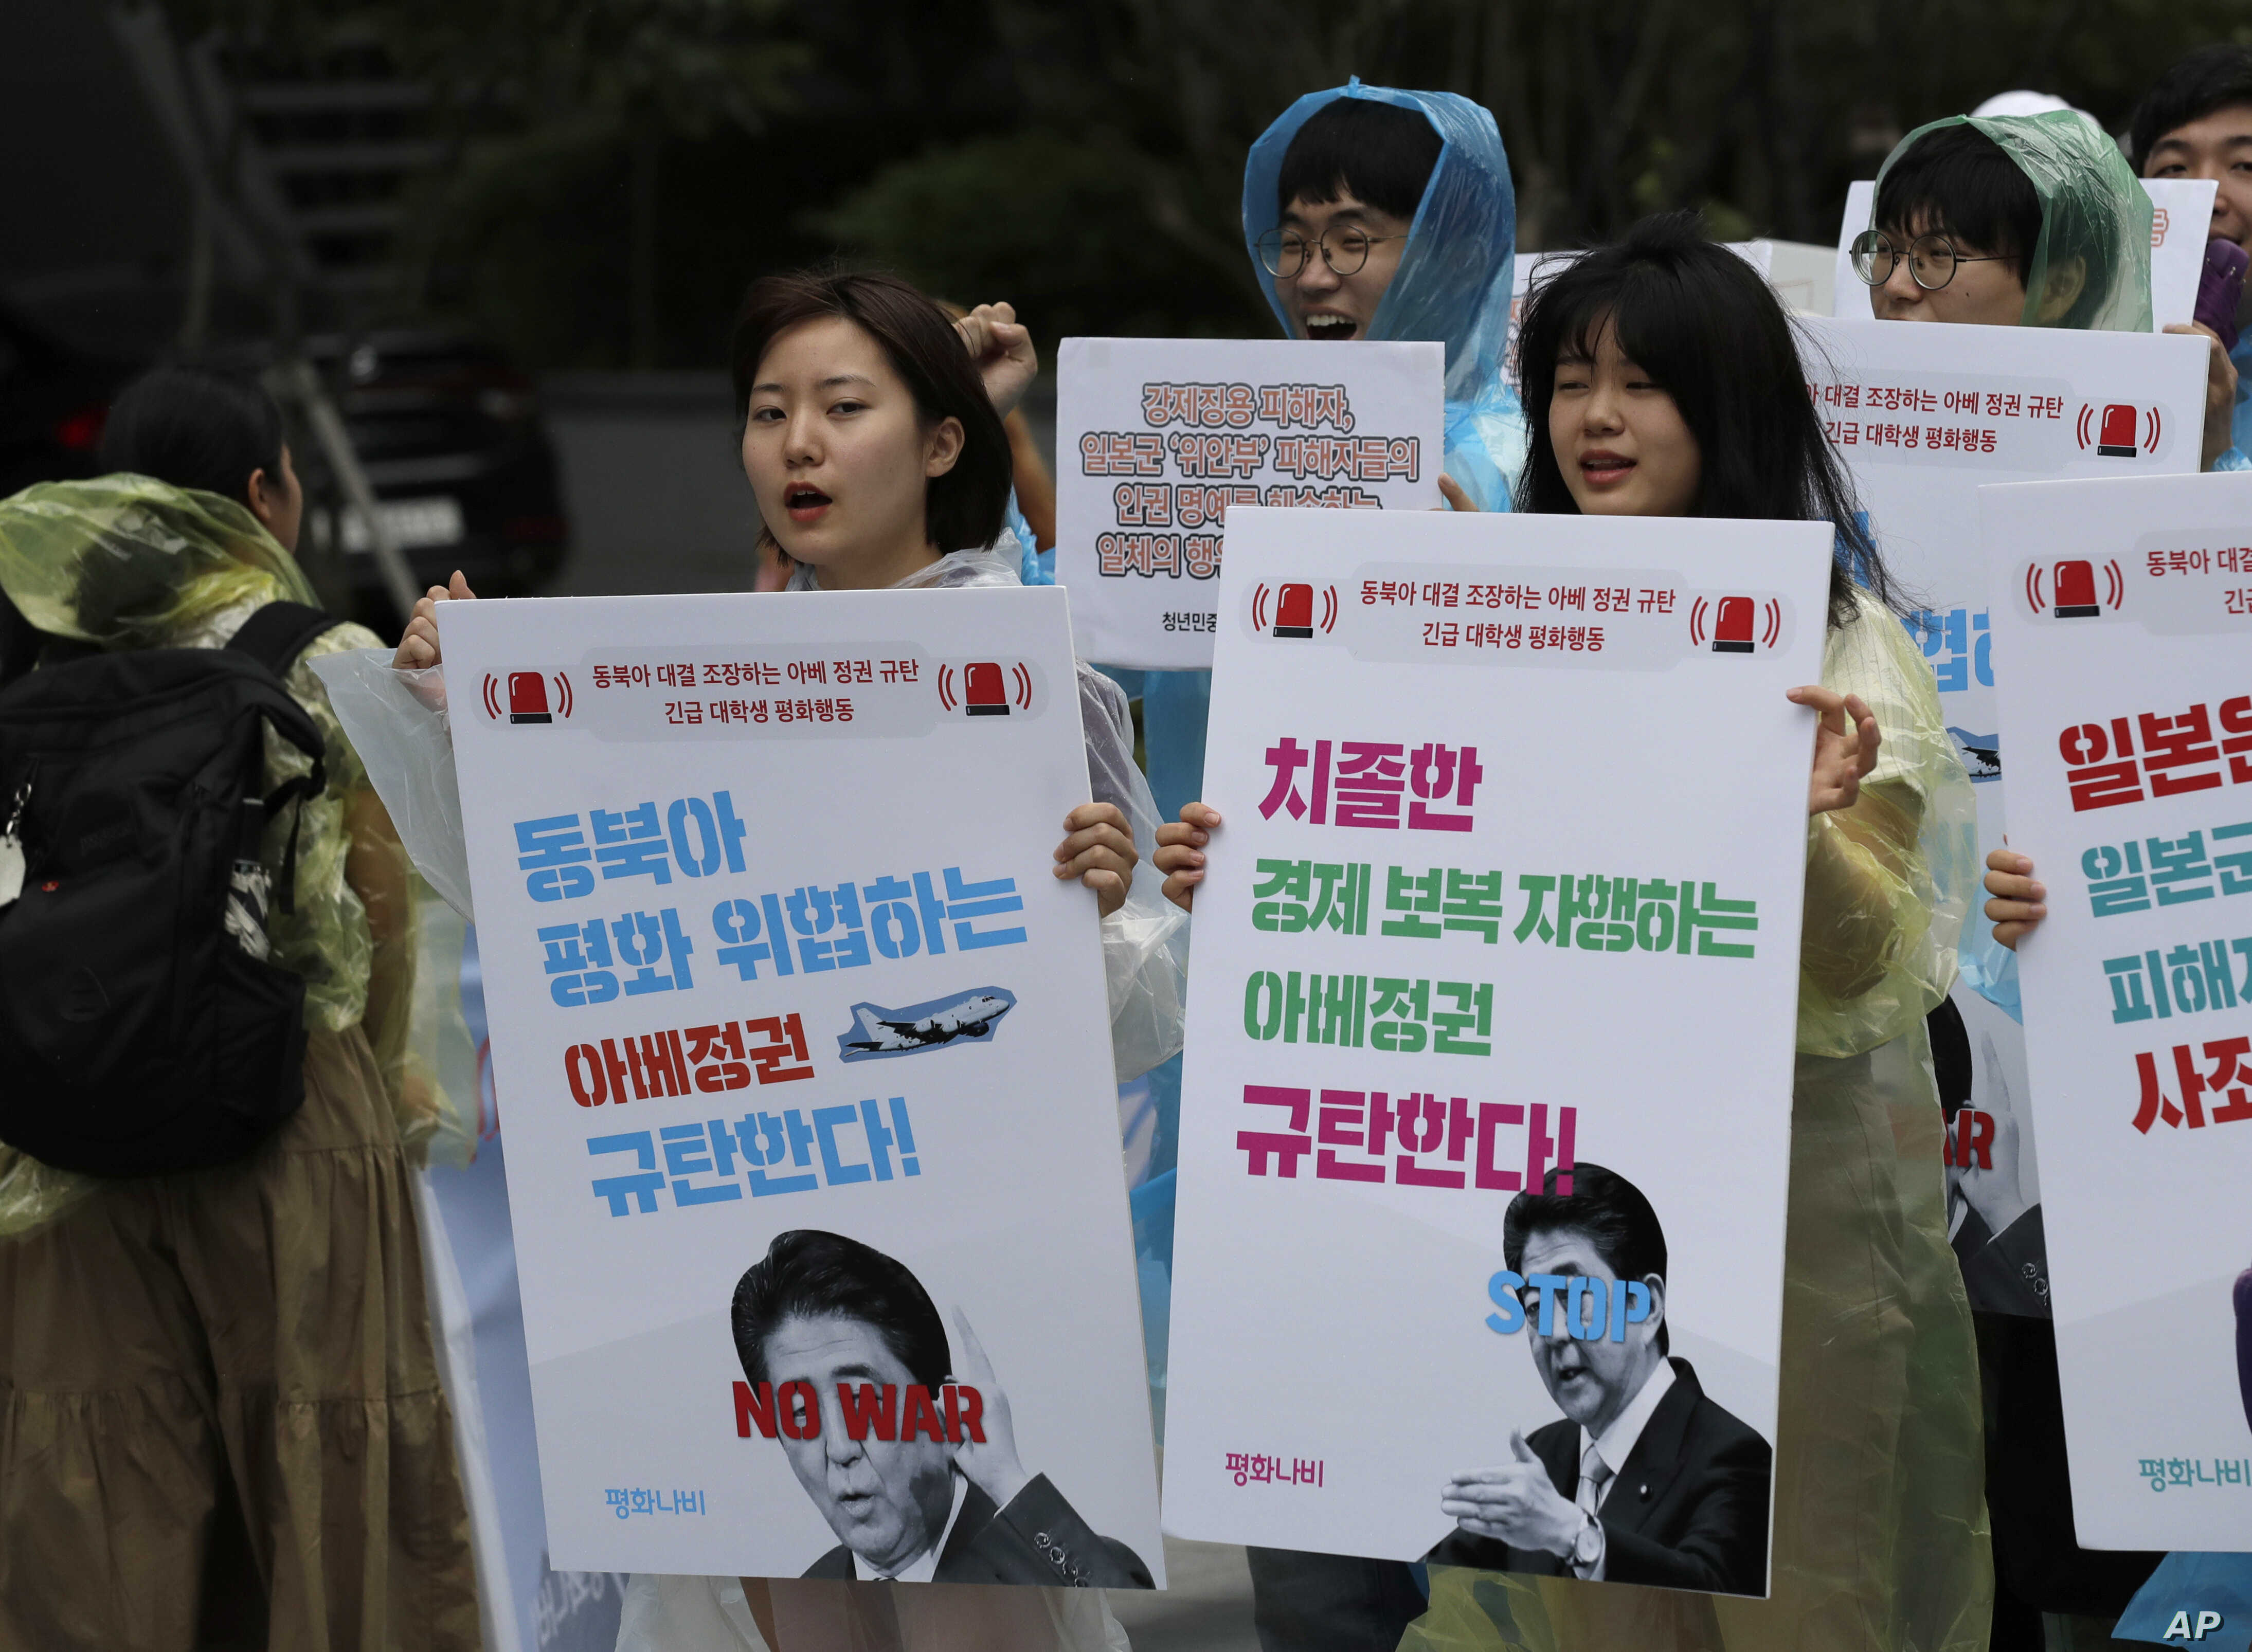 South Korean students shout slogans as they march to denounce Japanese government's decision near the Japanese embassy in Seoul, South Korea, Wednesday, July 10, 2019. South Korean President Moon Jae-in on Wednesday criticized comments by Japanese…